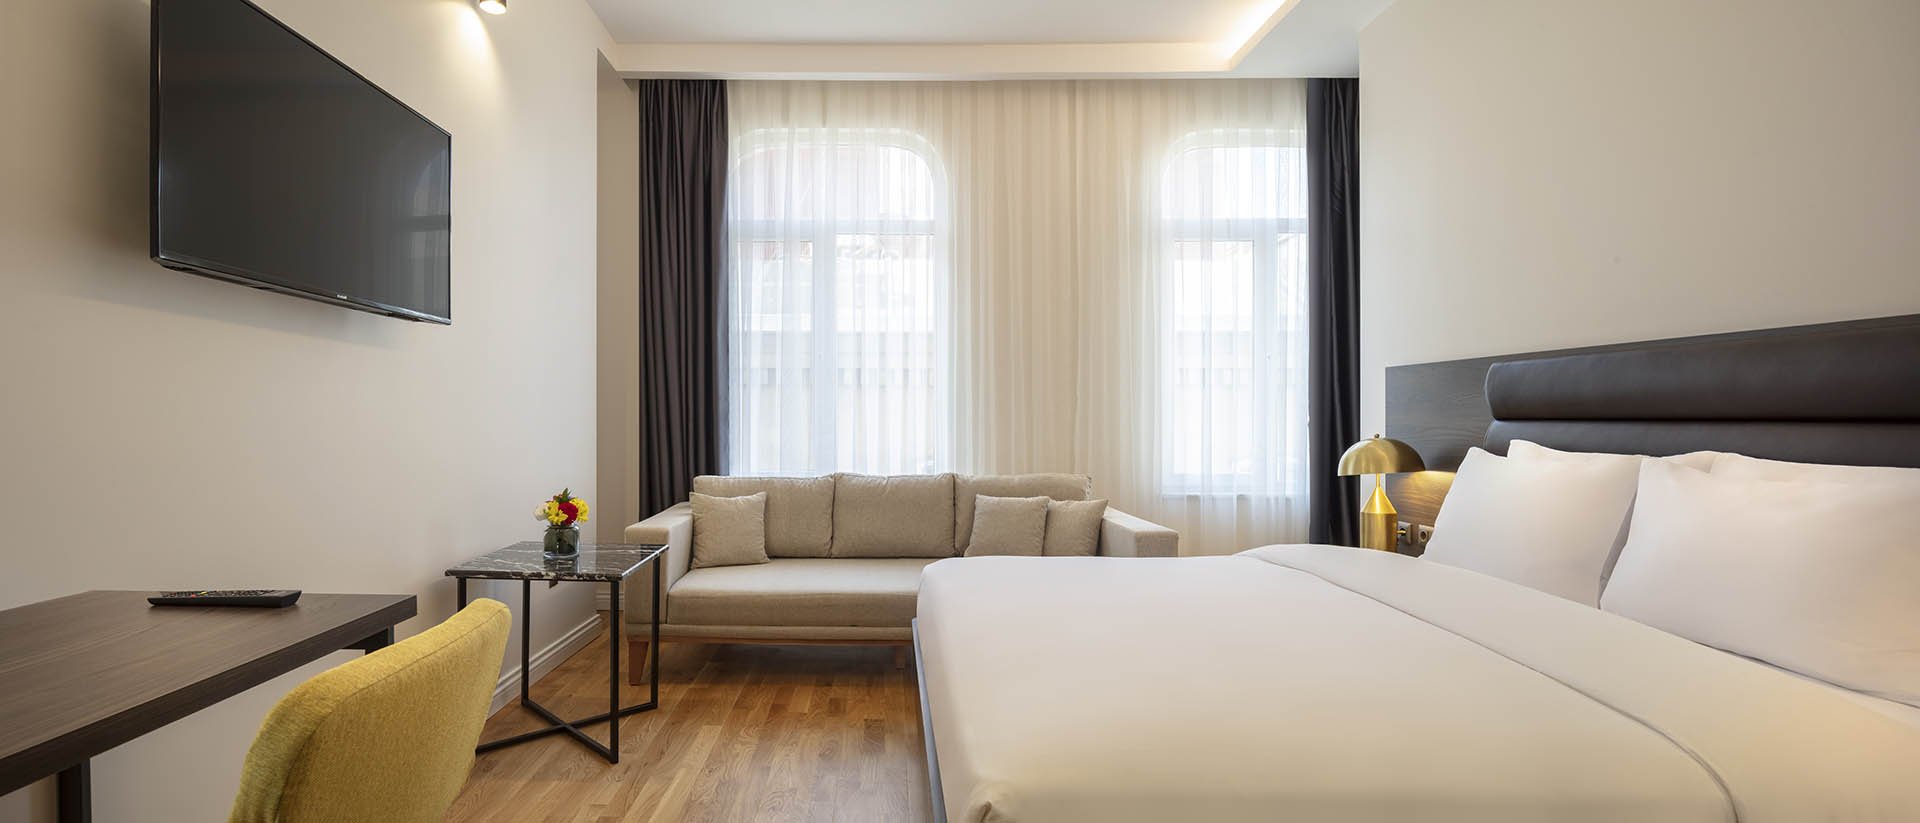 Delux-guest-Room1-1